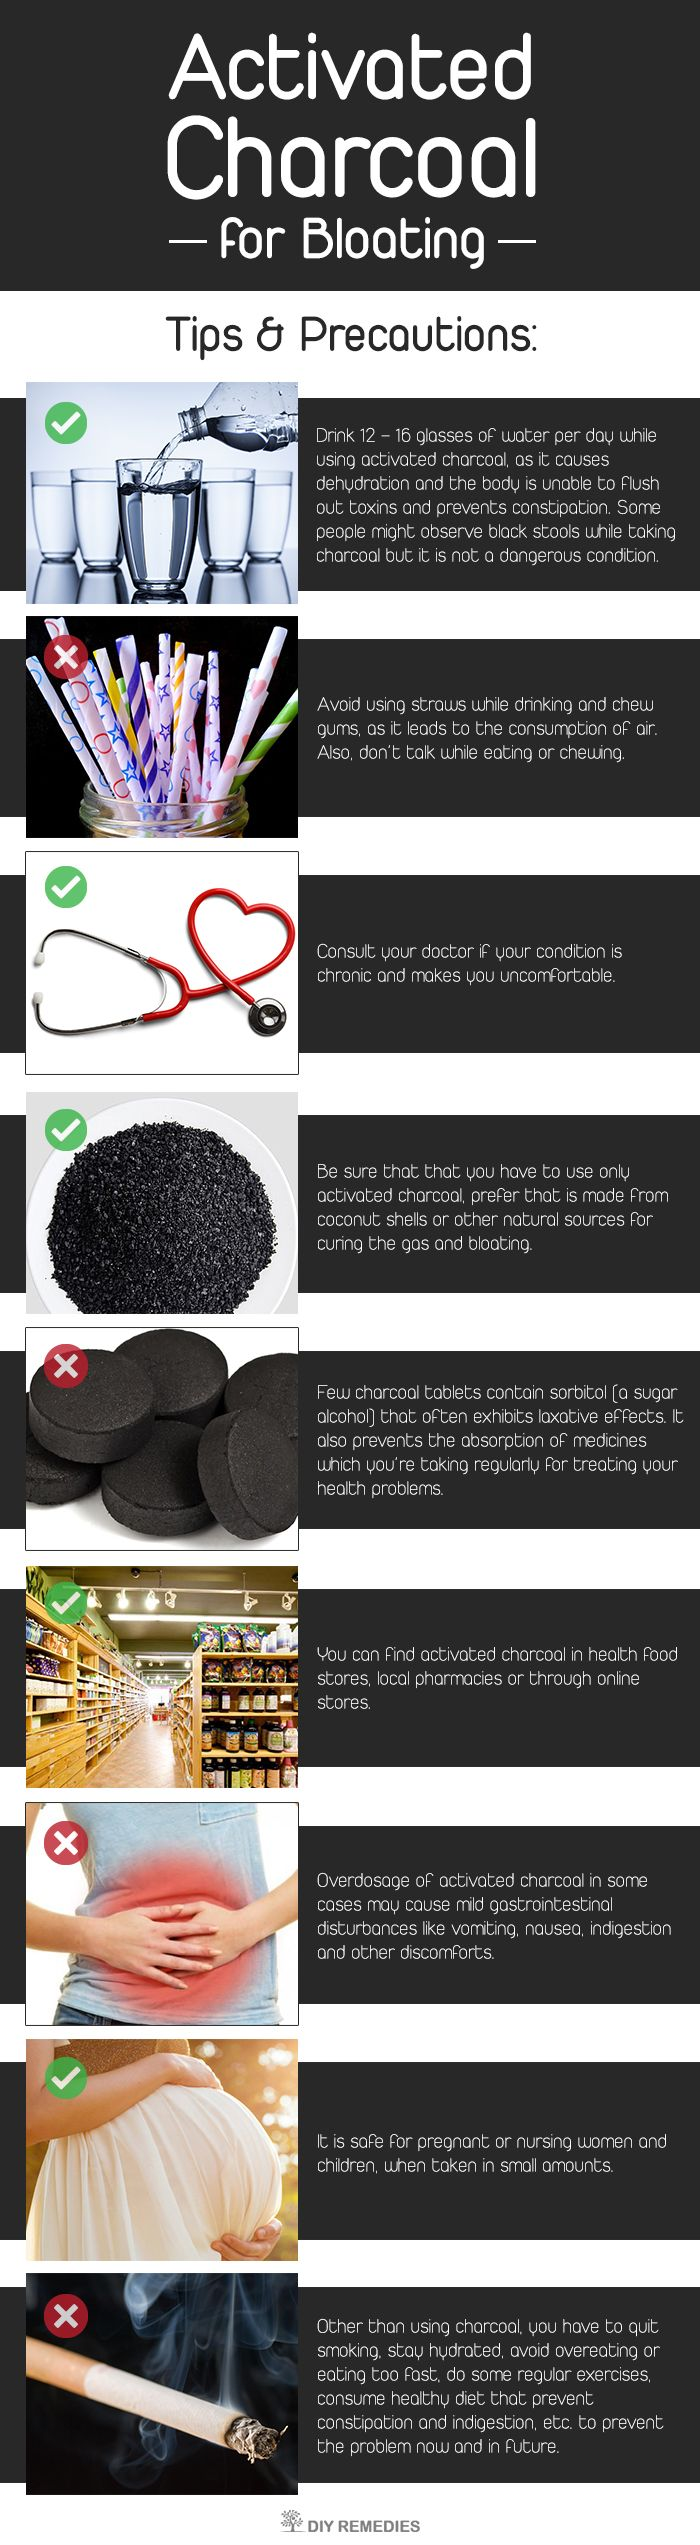 activated charcoal for bloating holistic remedies pinterest